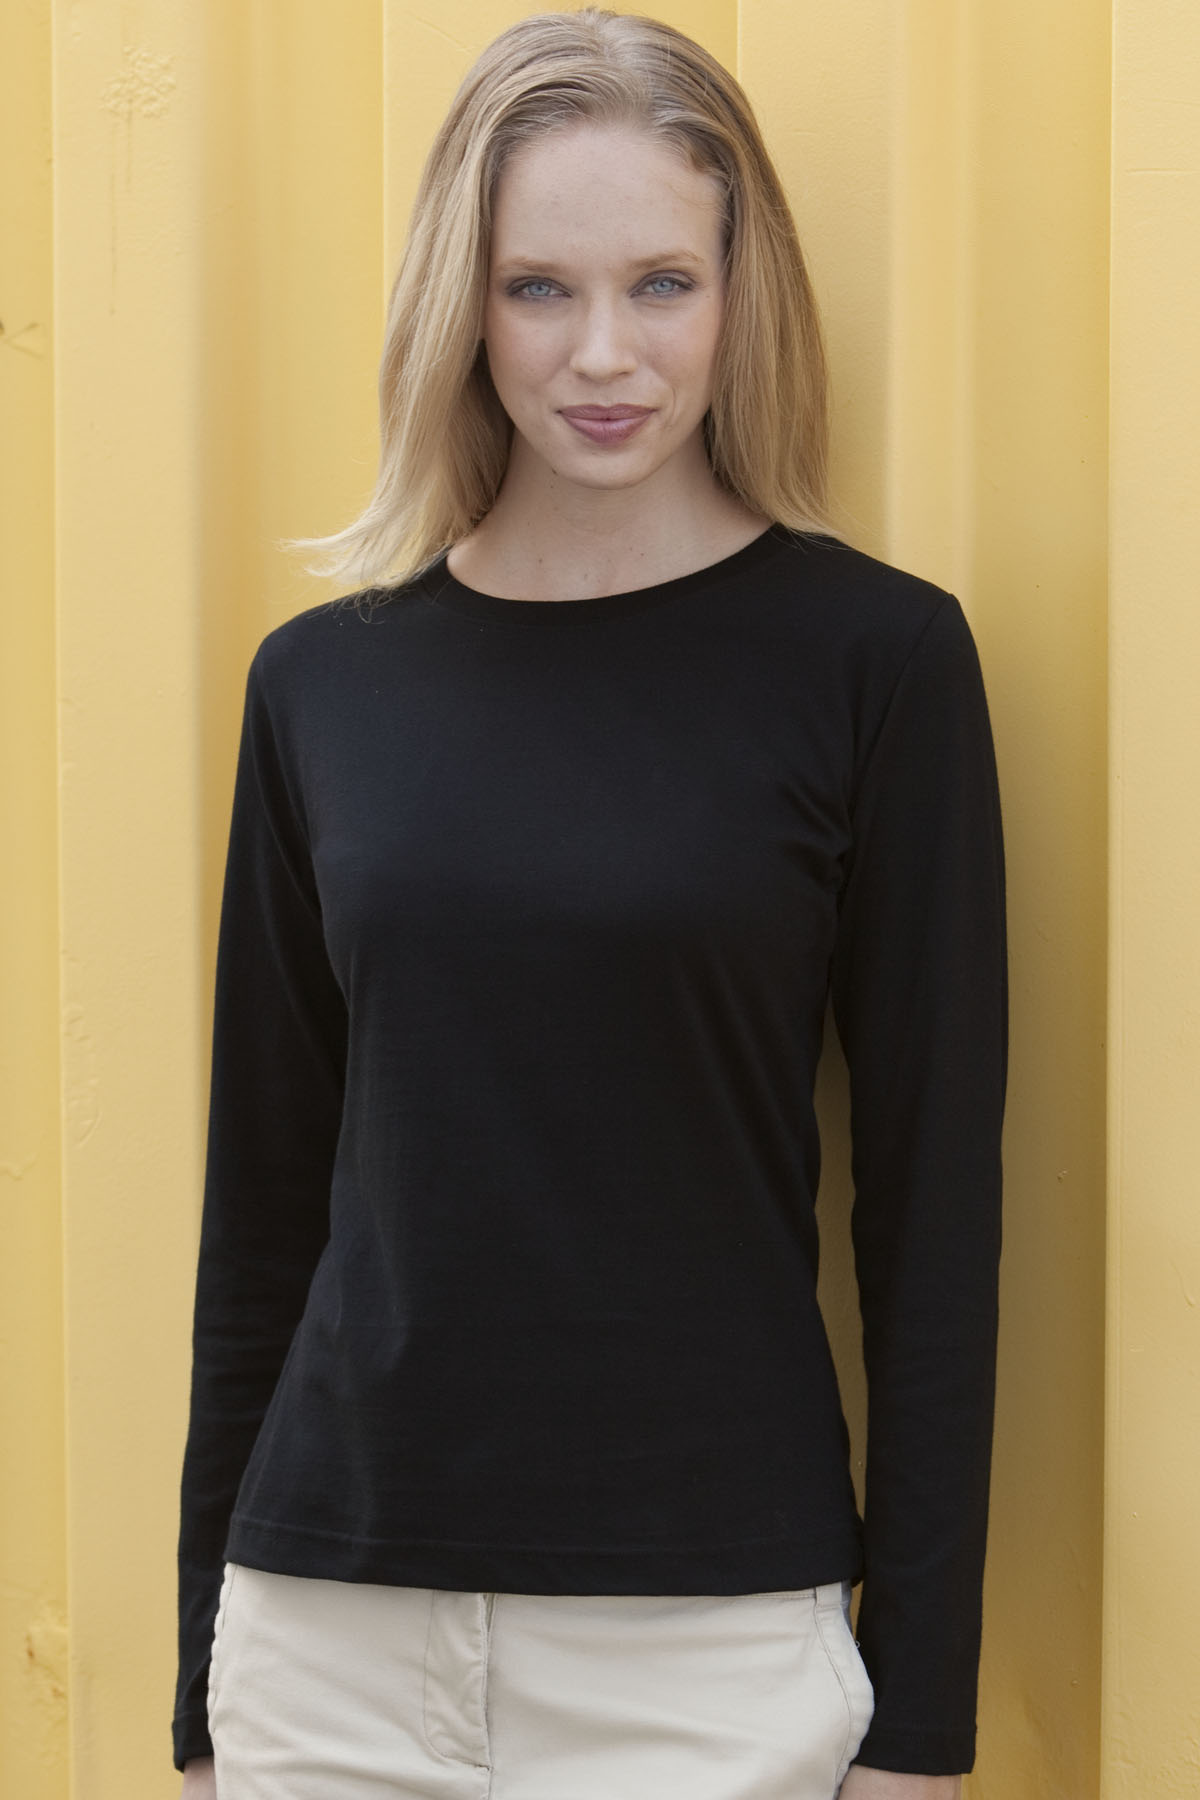 Vantage 0284 - Women's Long Sleeve Scoop Neck T-Shirt